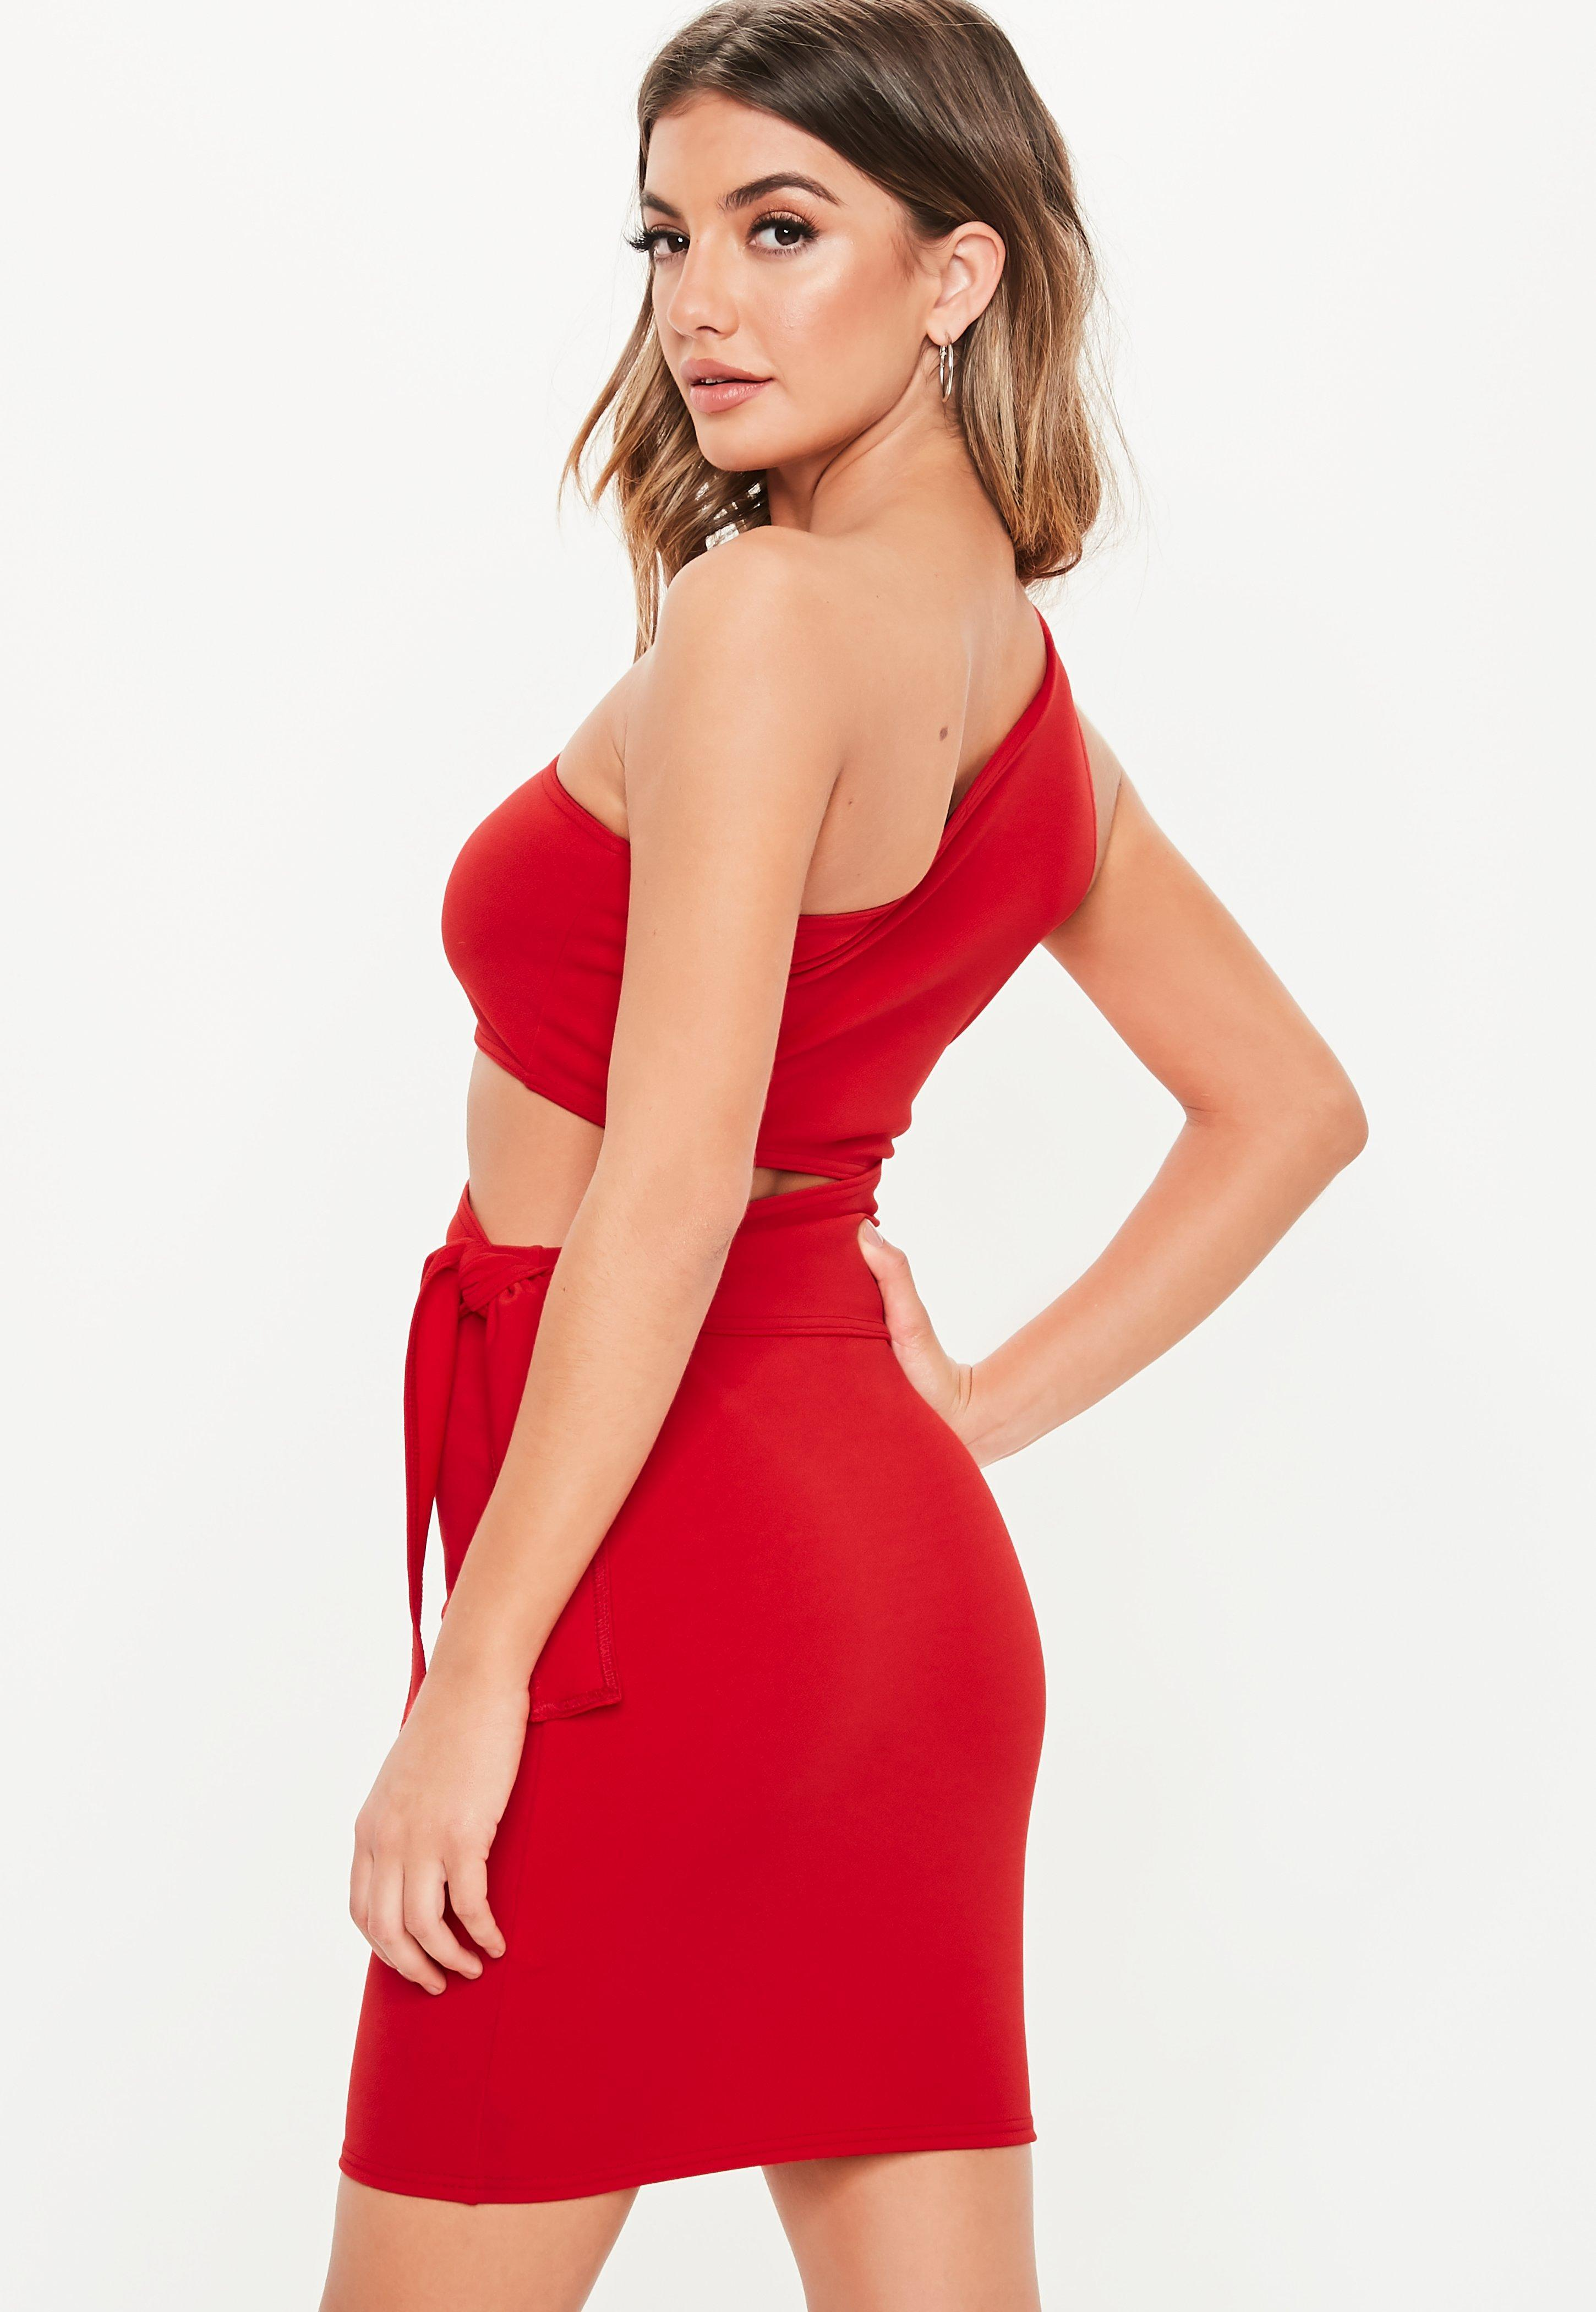 58d8a69184a Missguided - Red One Shoulder Cut Out Tie Mini Dress - Lyst. View fullscreen